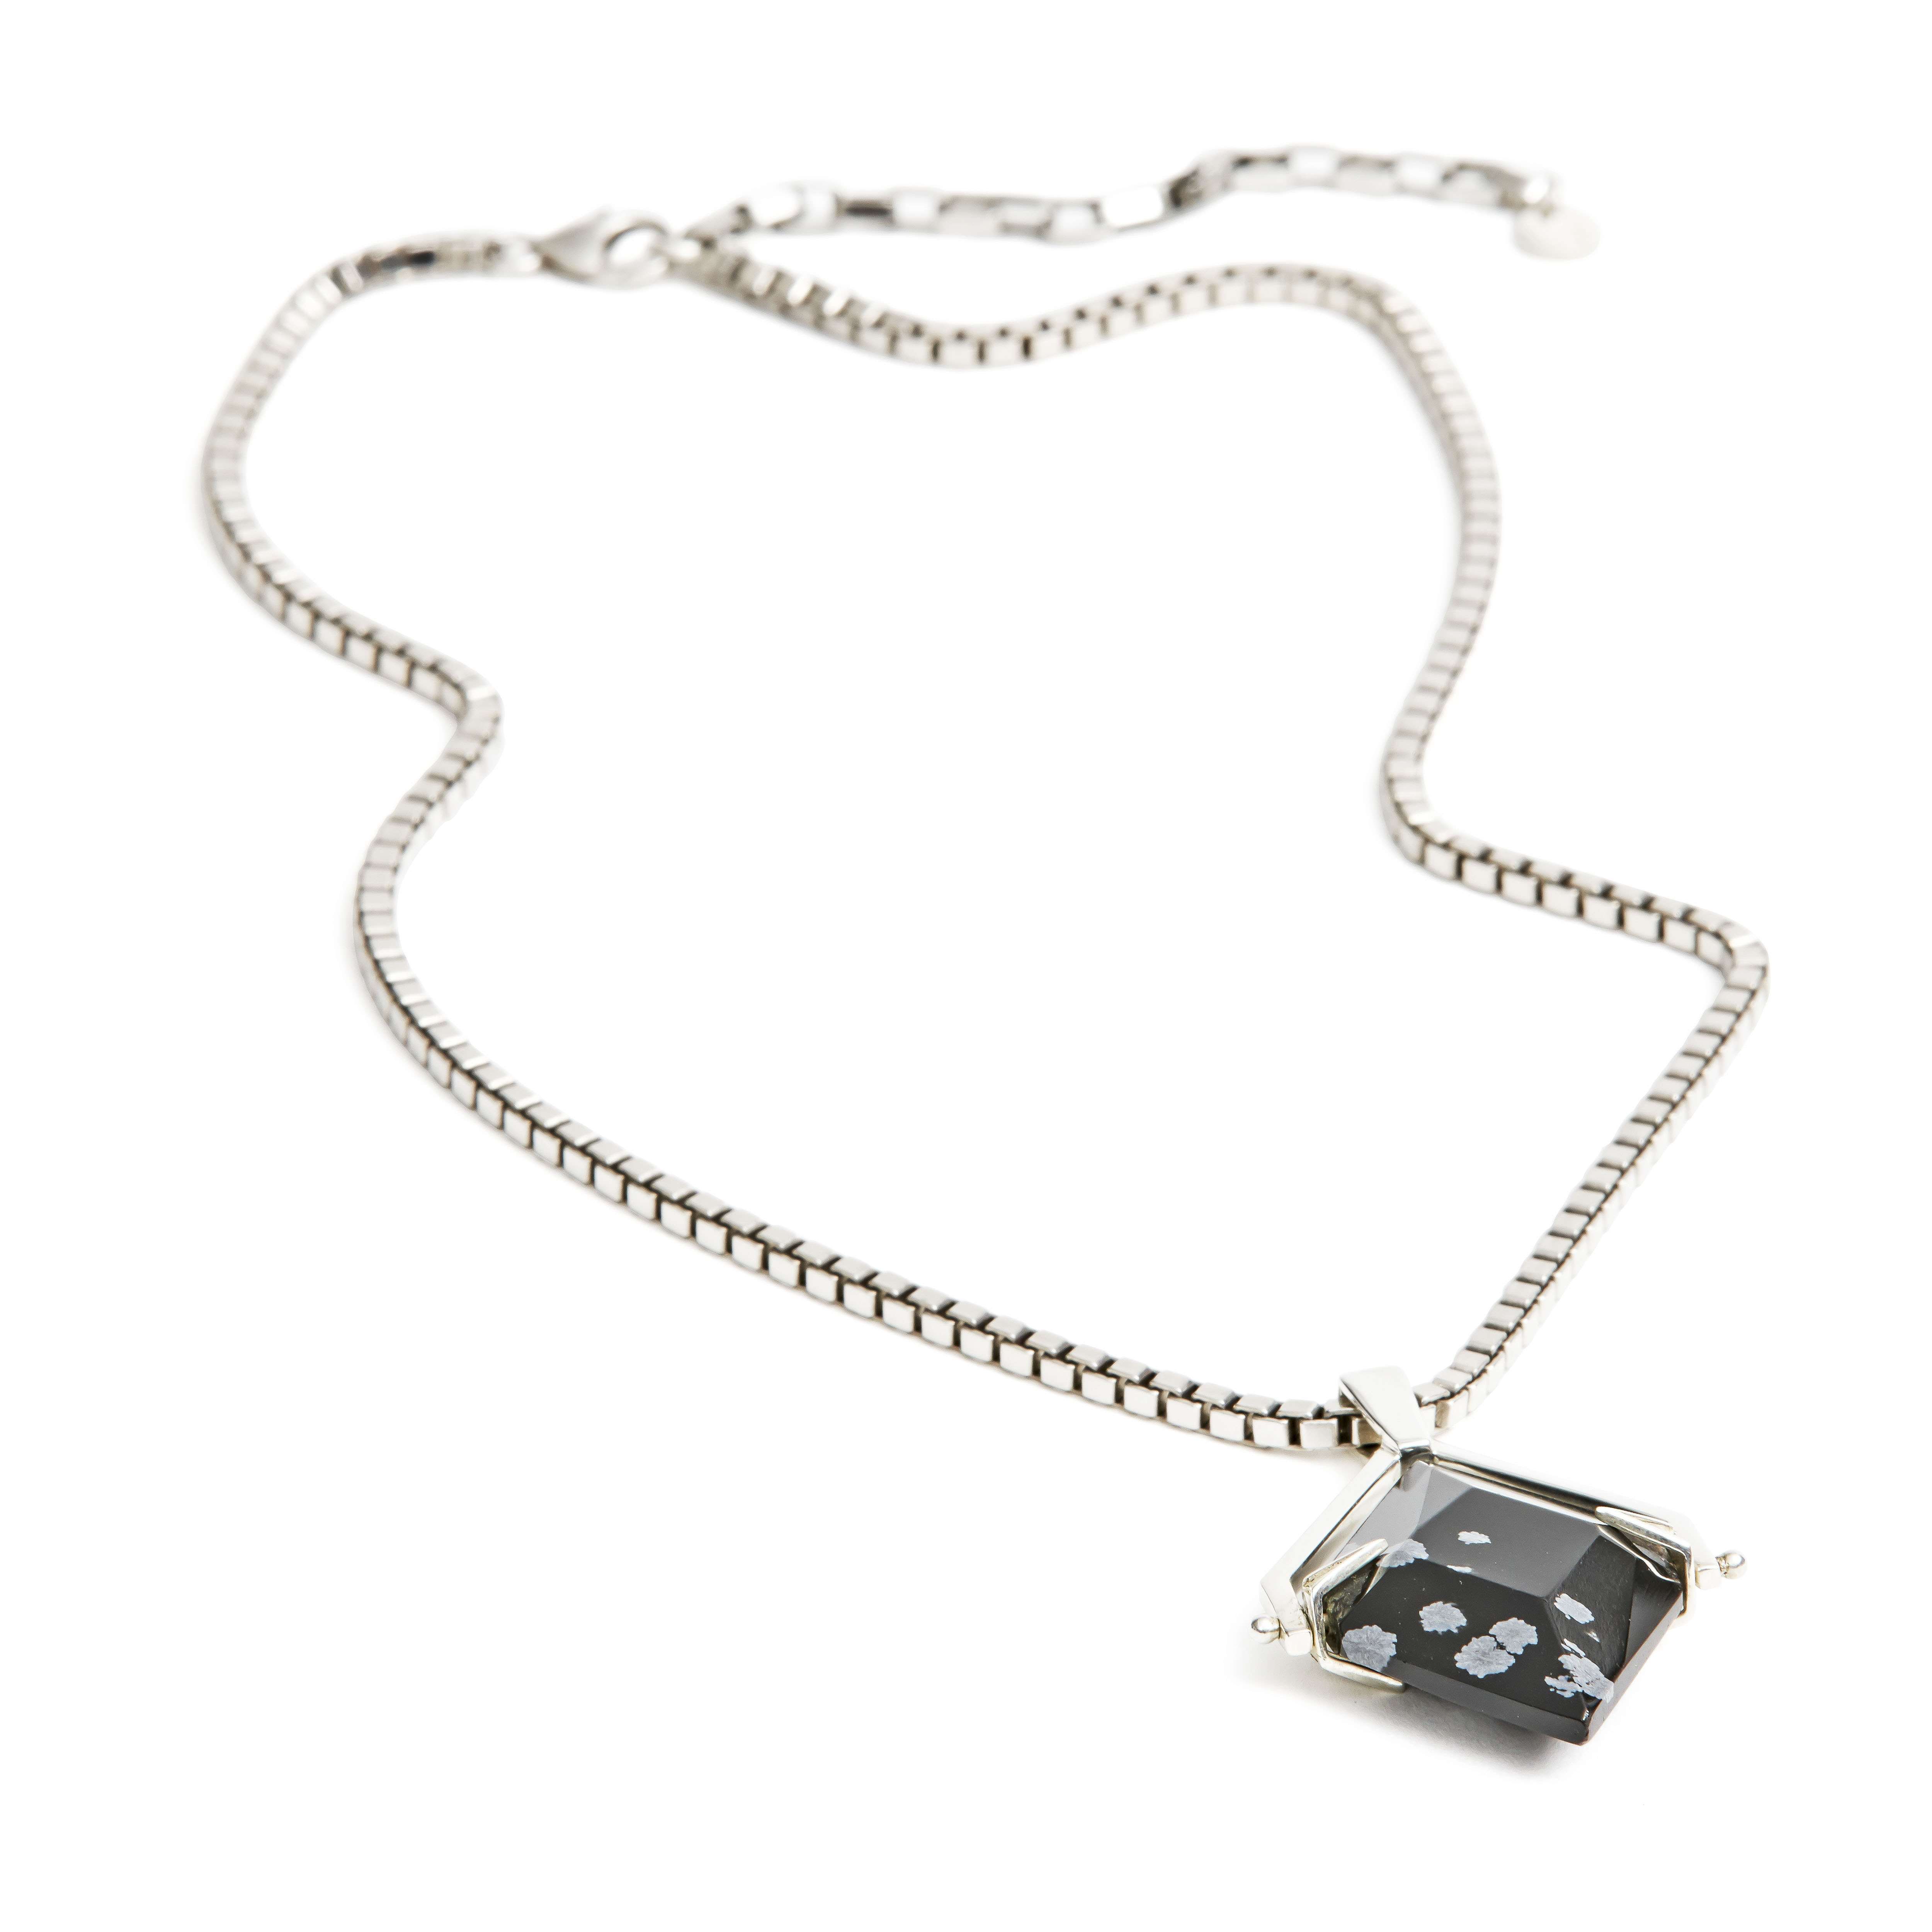 obsidian-silver-necklace-2